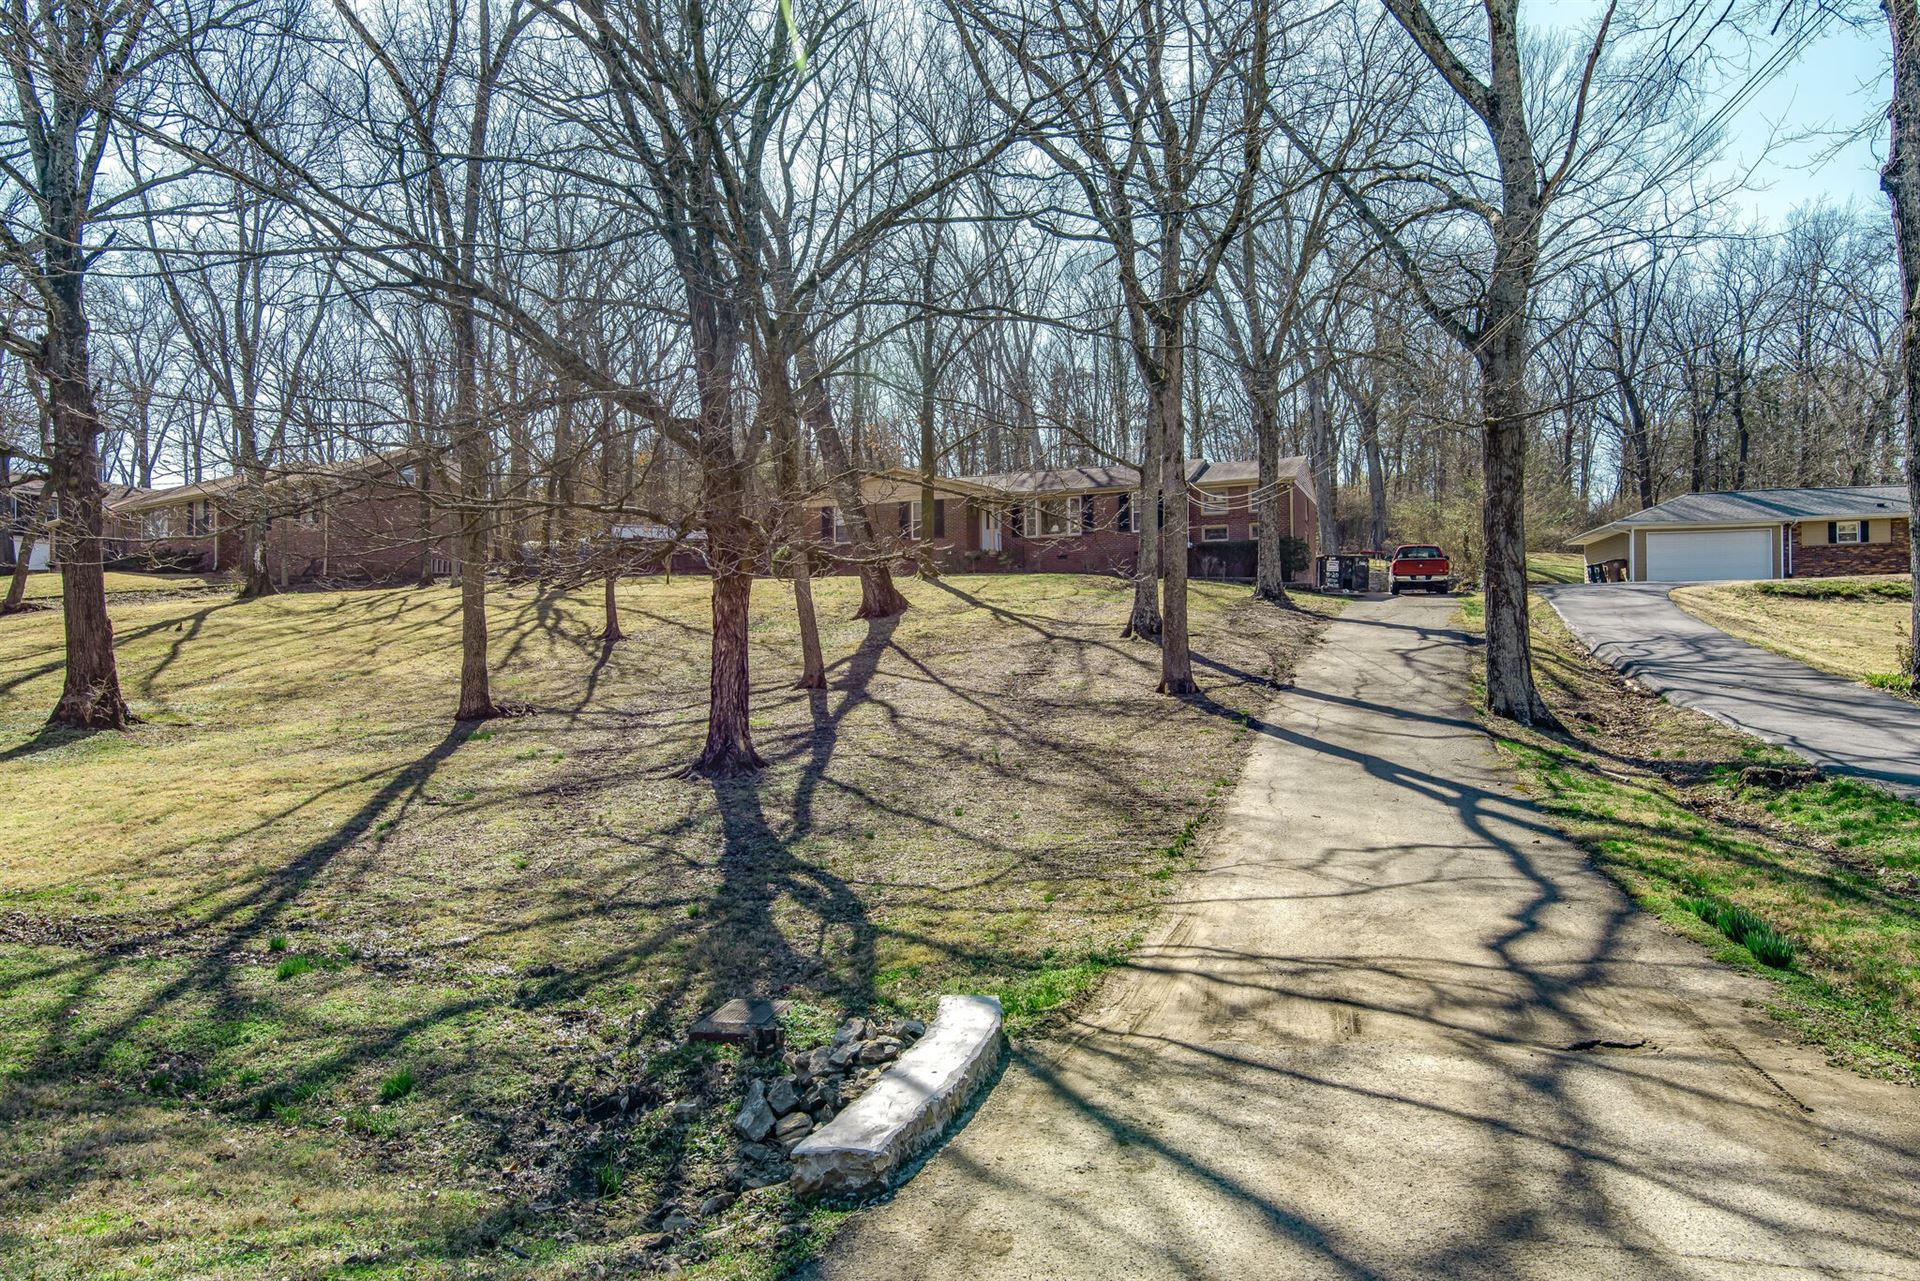 Photo of 703 Clematis Dr, Nashville, TN 37205 (MLS # 2233638)